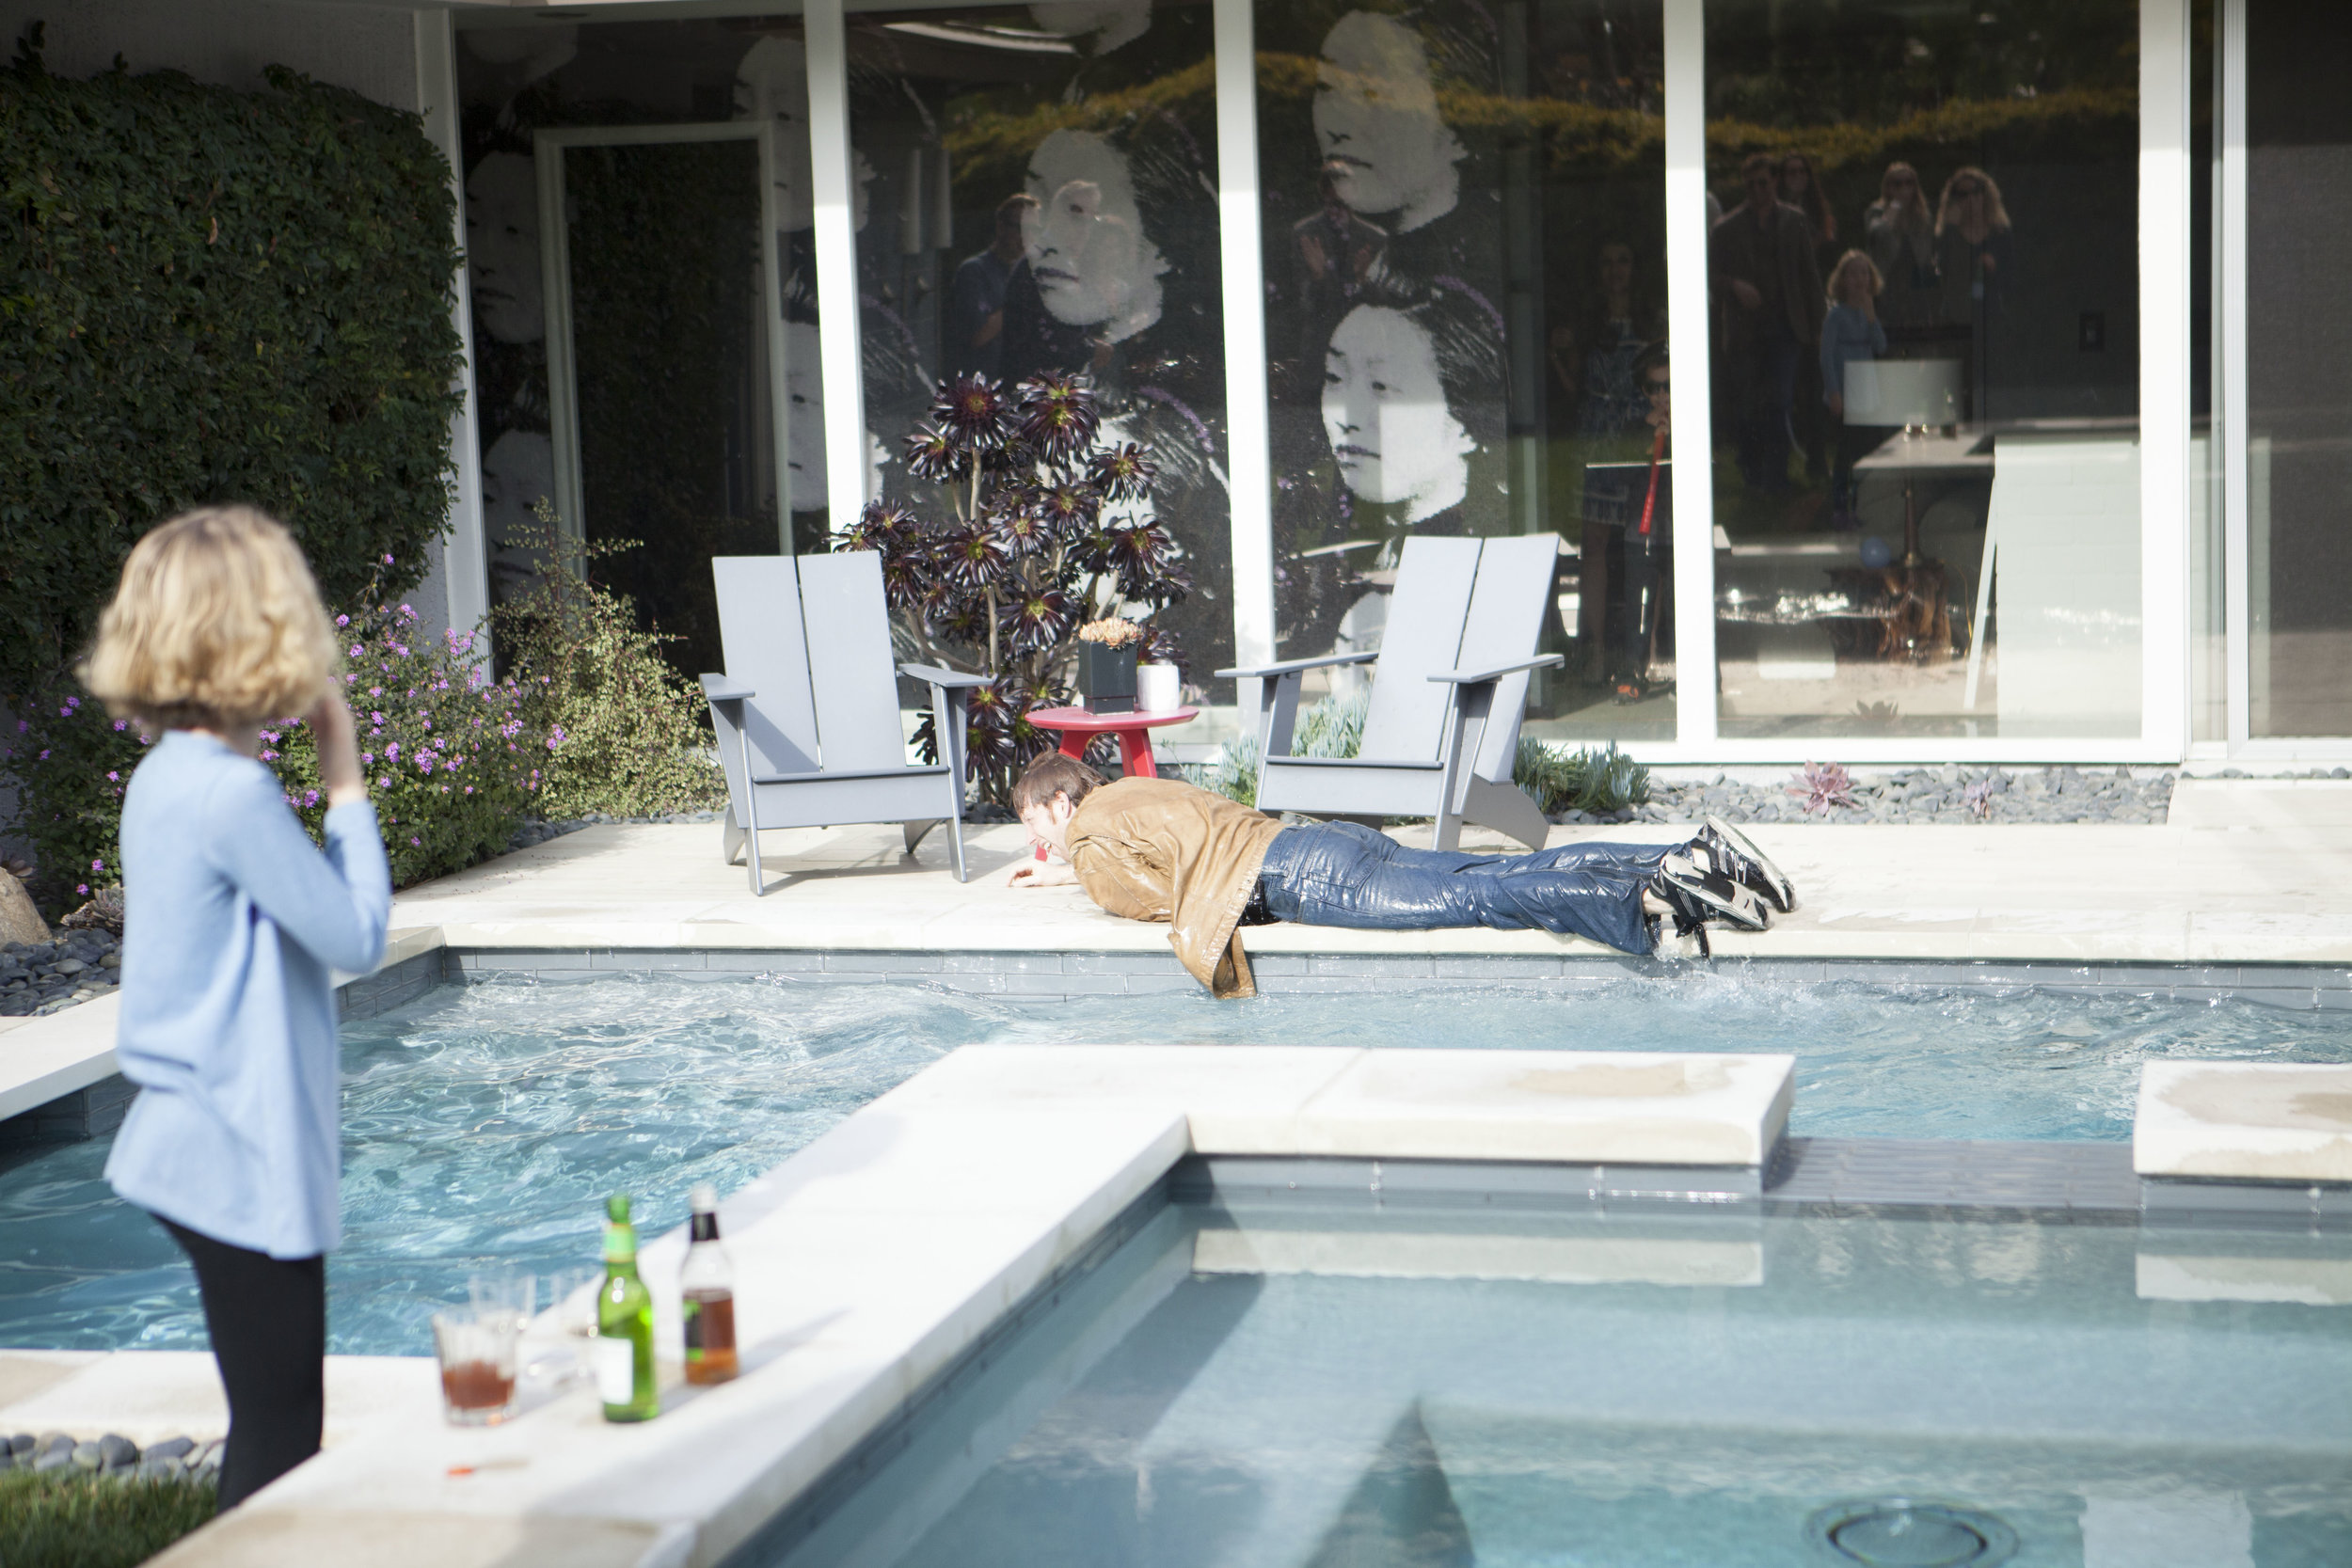 """1/17/16 Garden Party Scene. Lisa's Brother falls in the pool. L to R: Daisy Jemison (""""Noah's Daughter""""), Mike Harthen (""""Lisa's Brother"""")"""